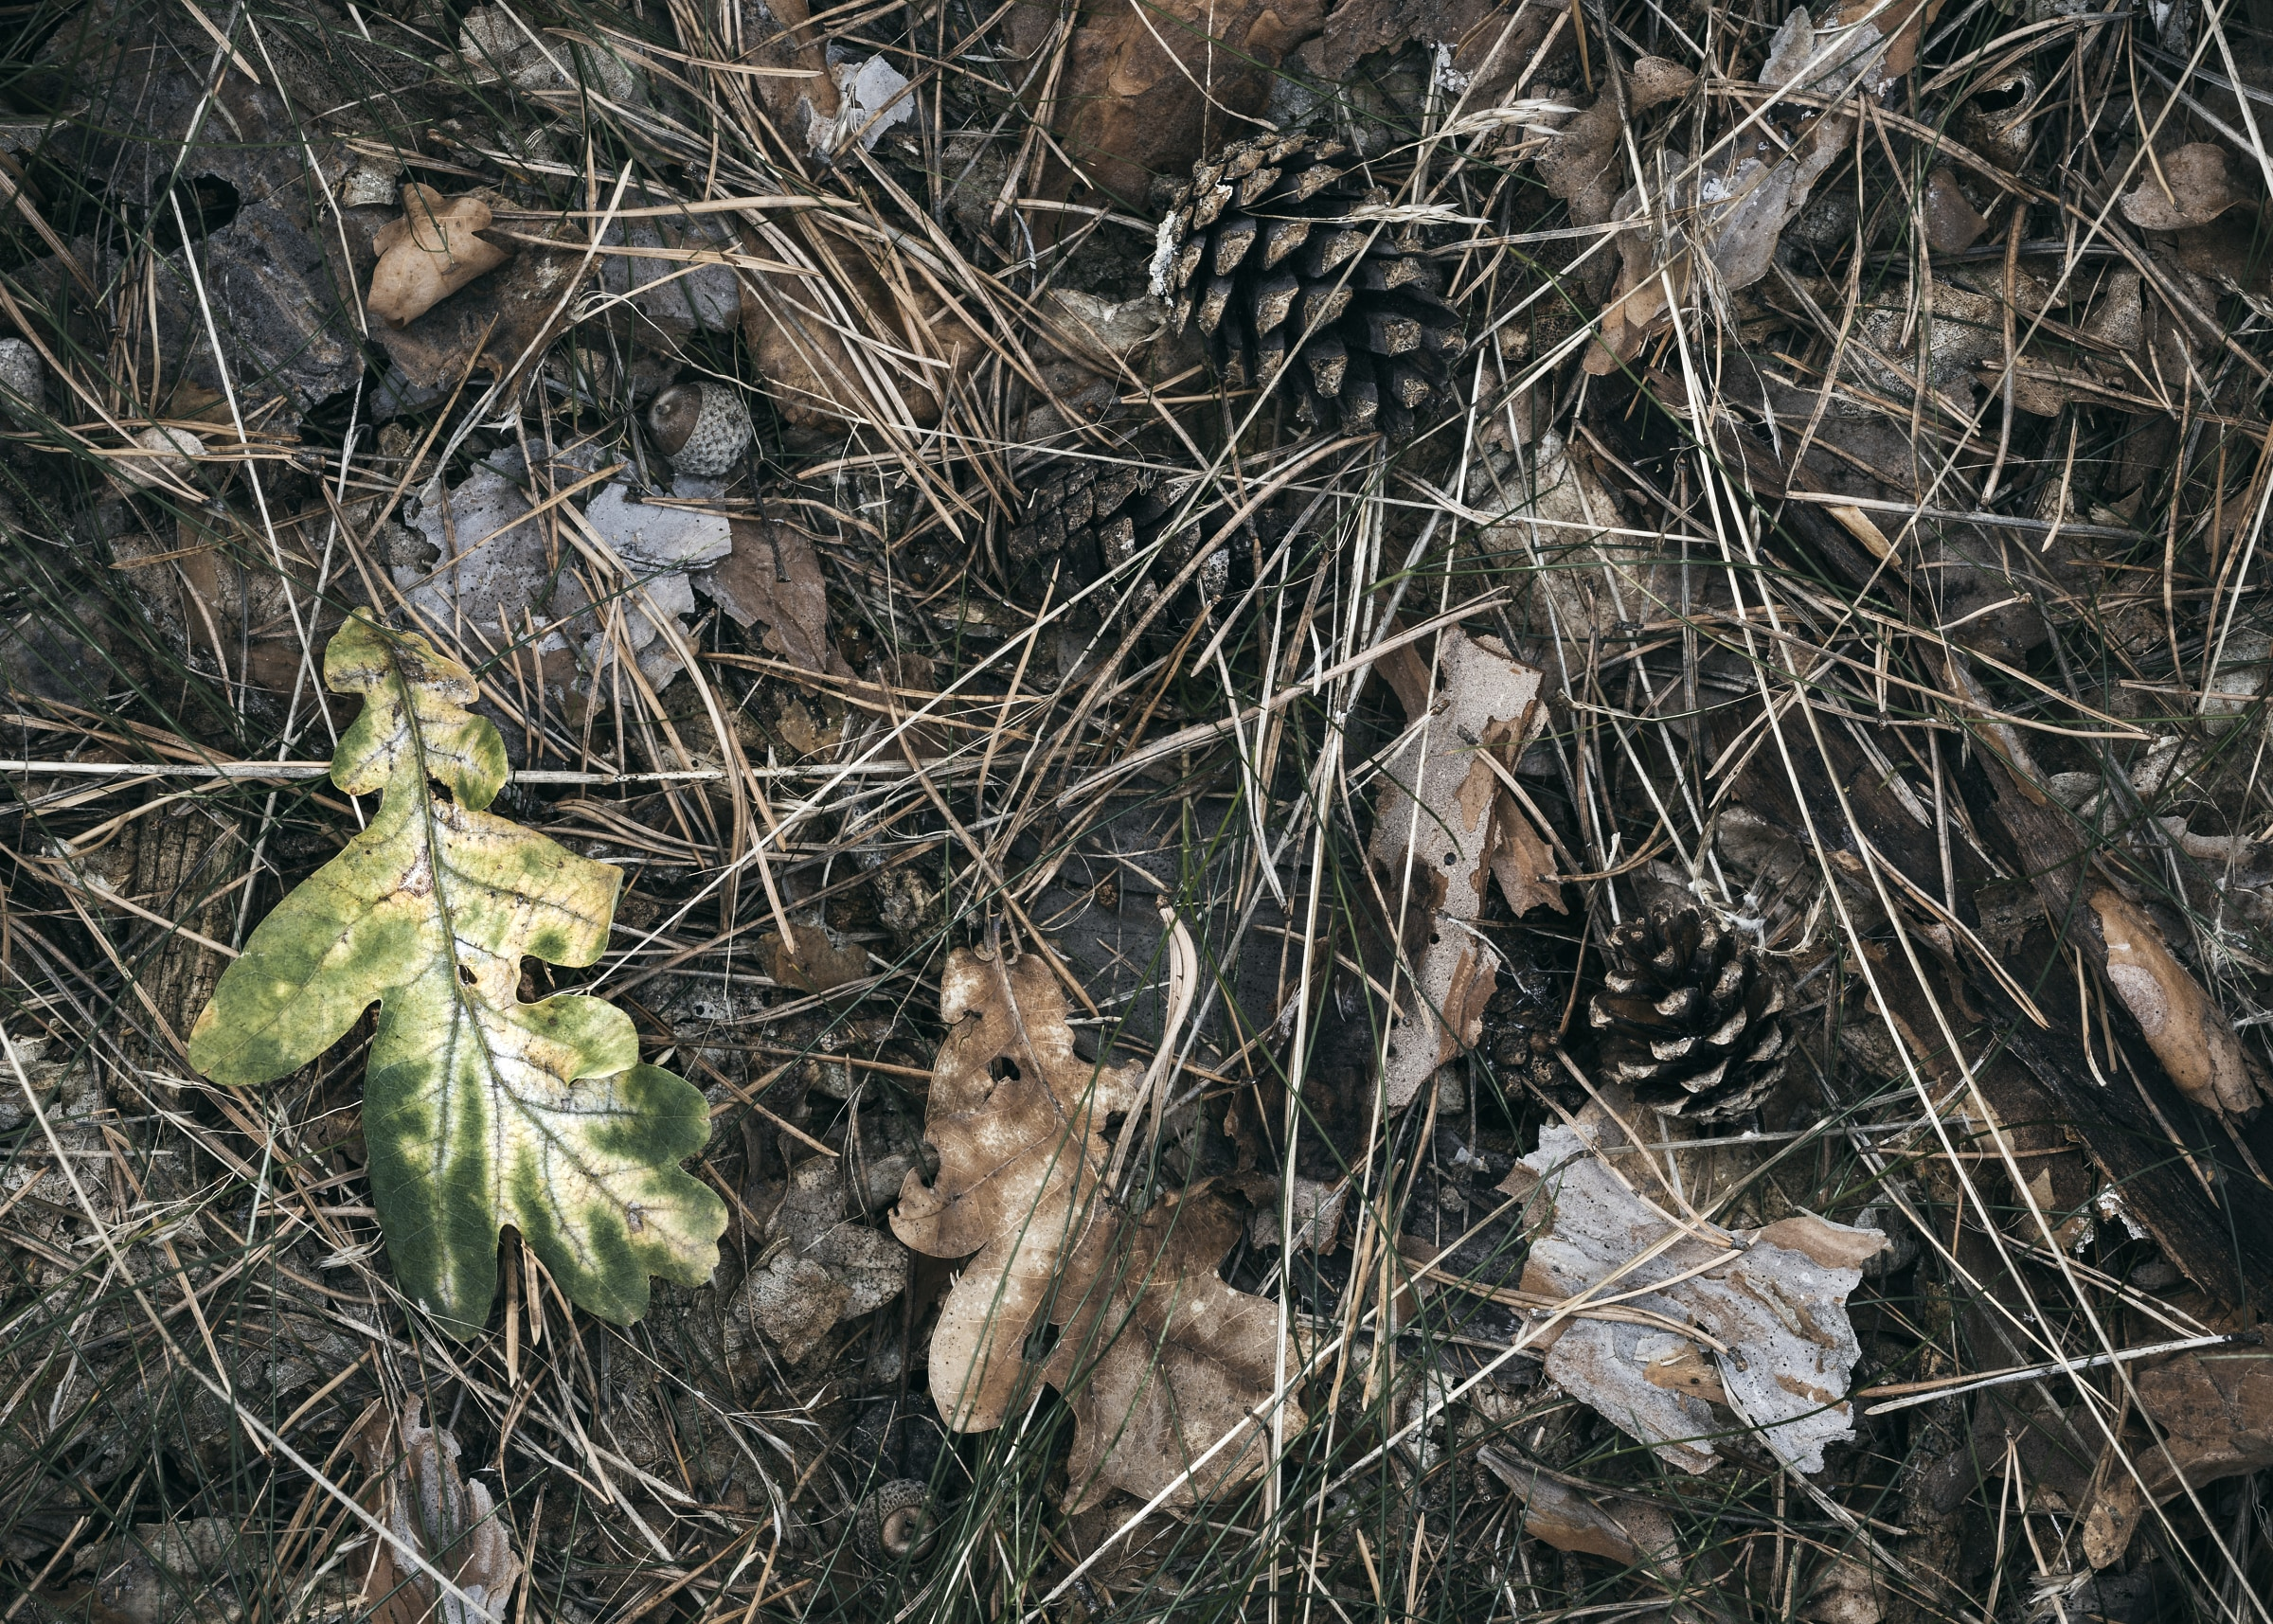 Oak leaf and cones